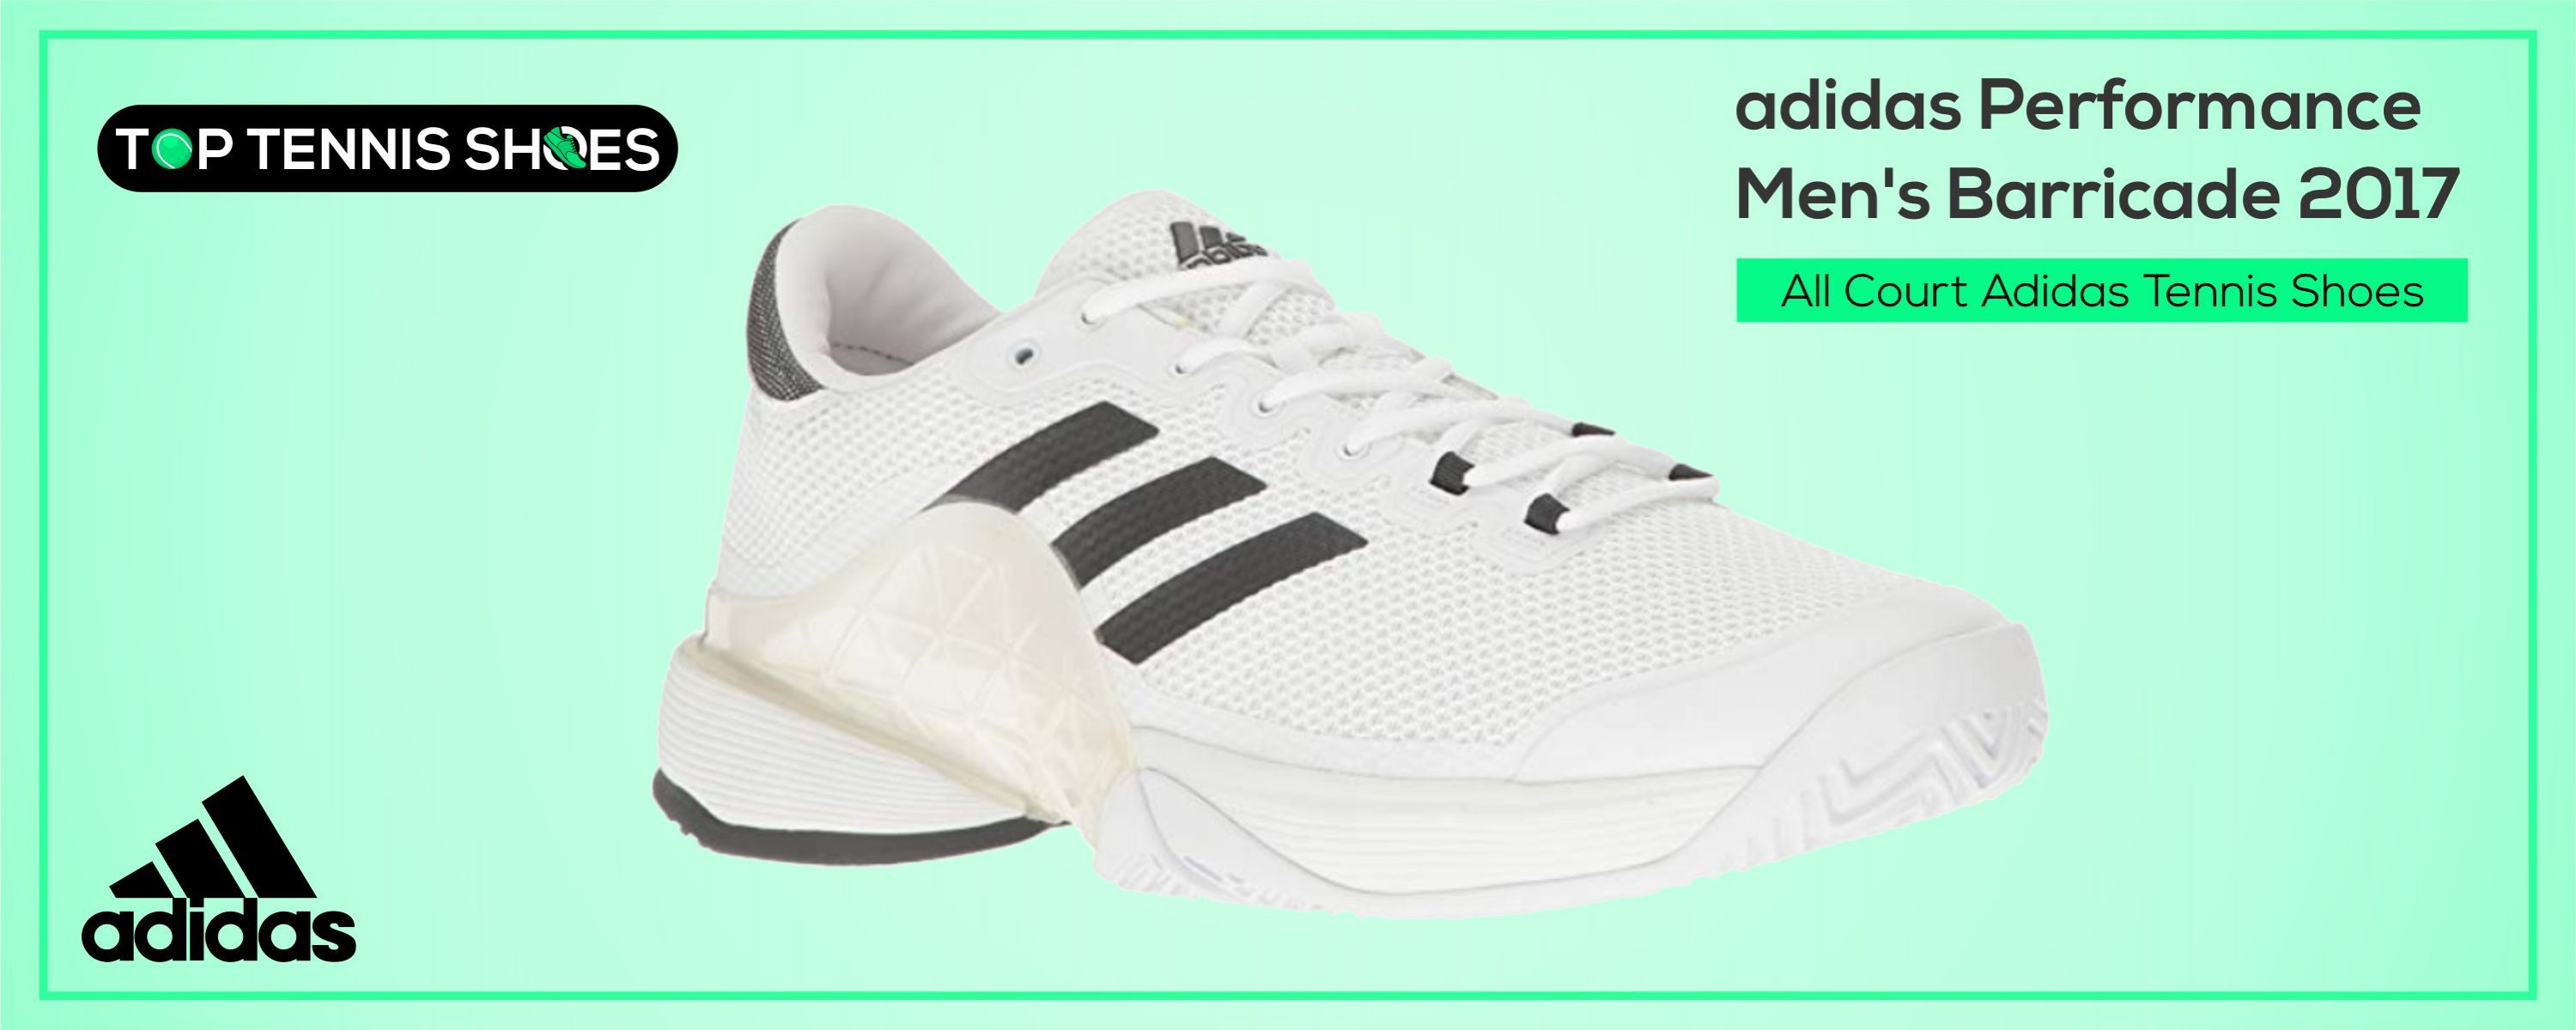 All Court Adidas Tennis Shoes